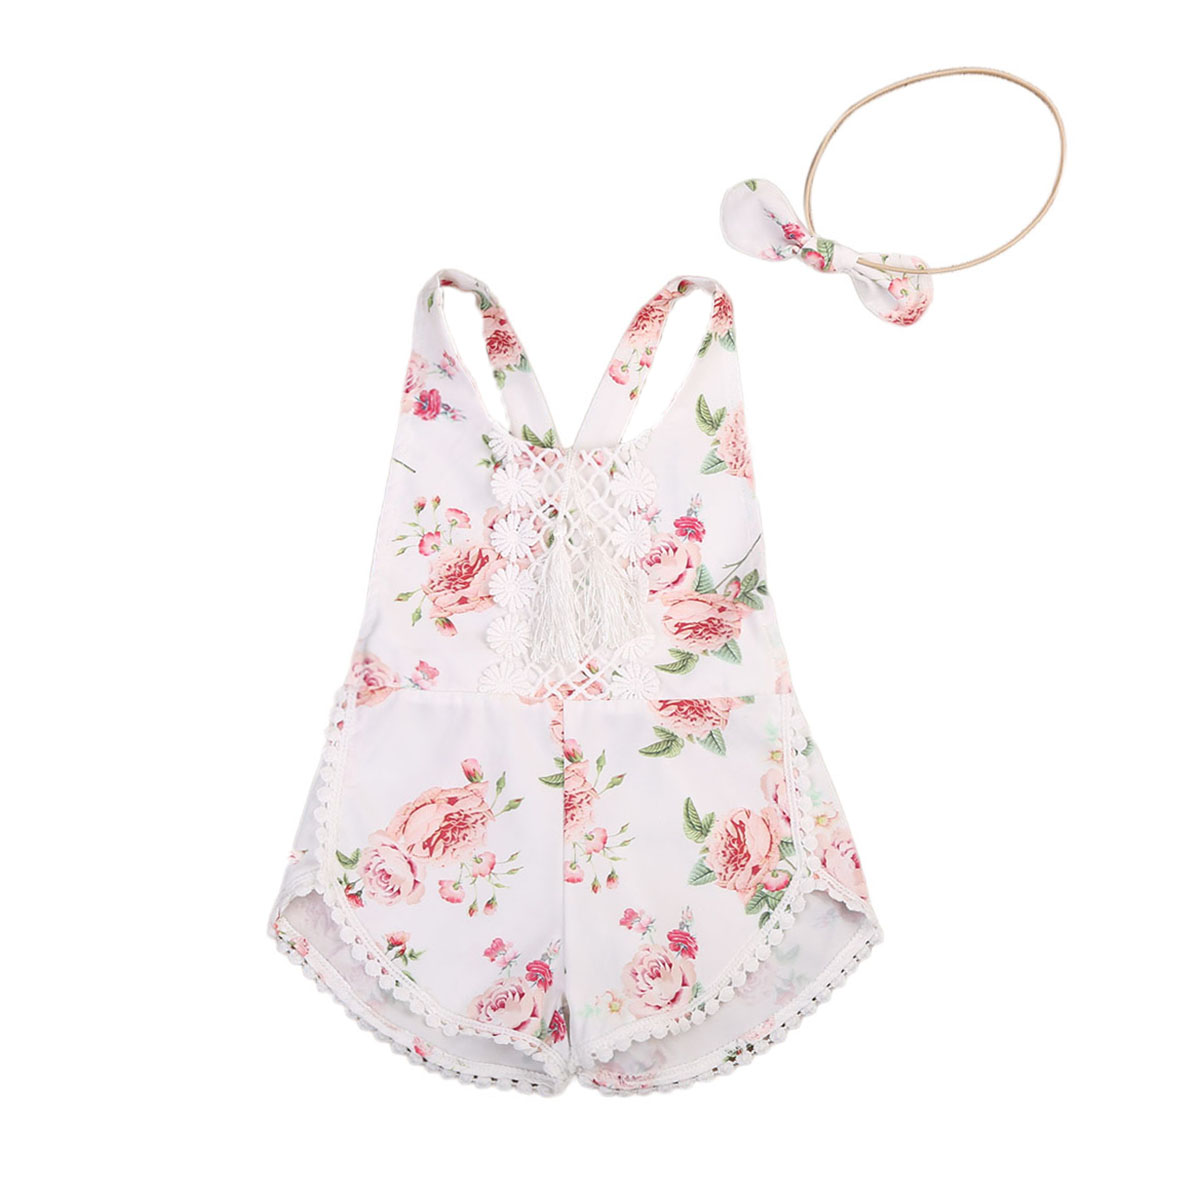 Newborn Infant Baby Girl Clothes Floral Clothes Jumpsuit   Romper   +Headband Outfit Set M